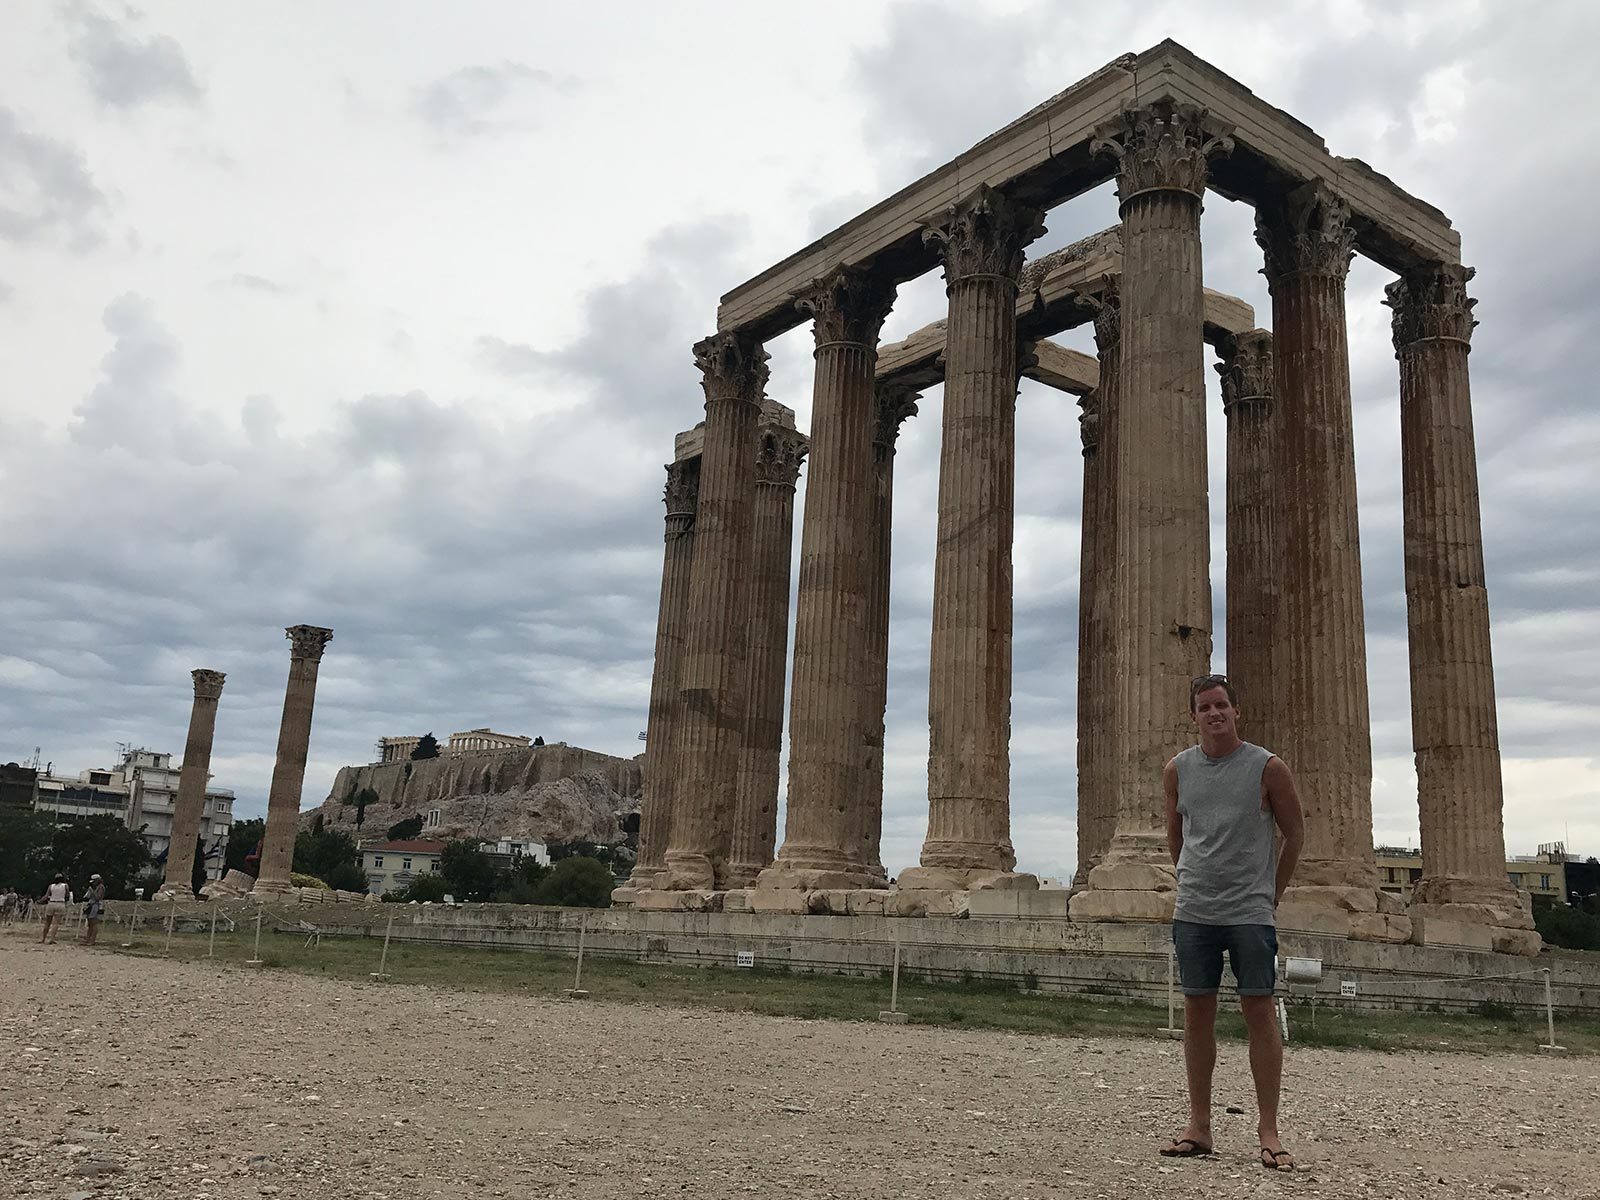 David Simpson at Temple of Zeus in Athens, Greece. Athens has me